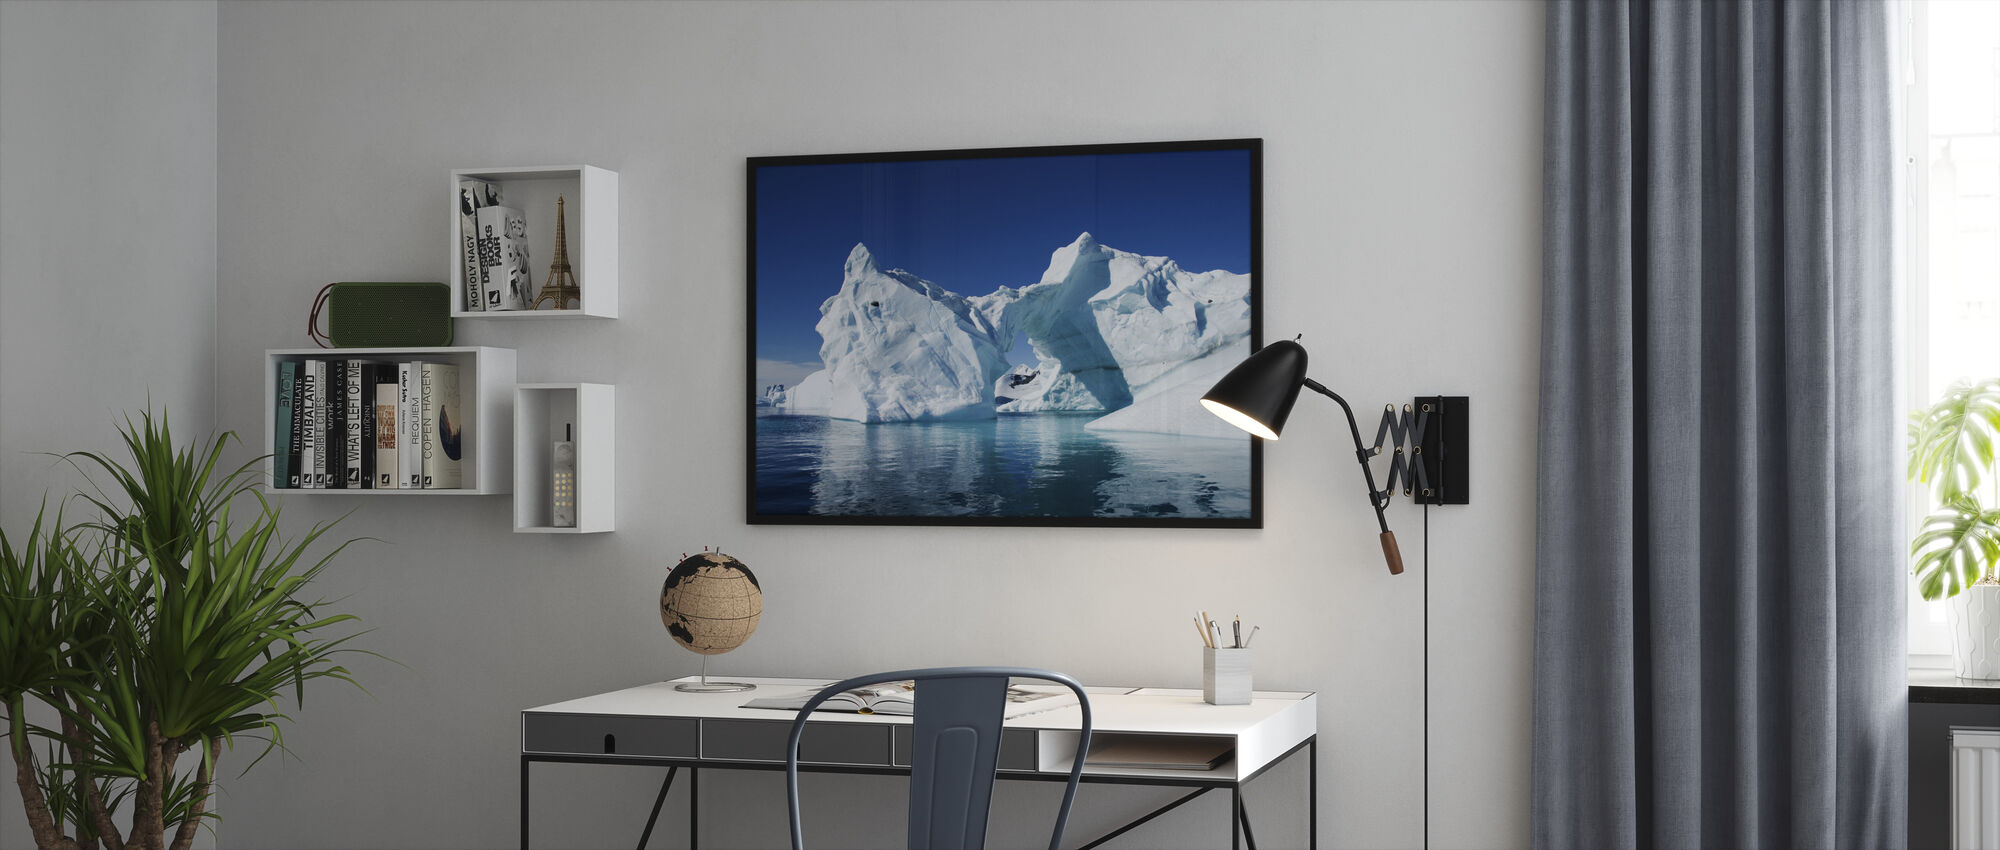 Iceberg Antarctica - Framed print - Office